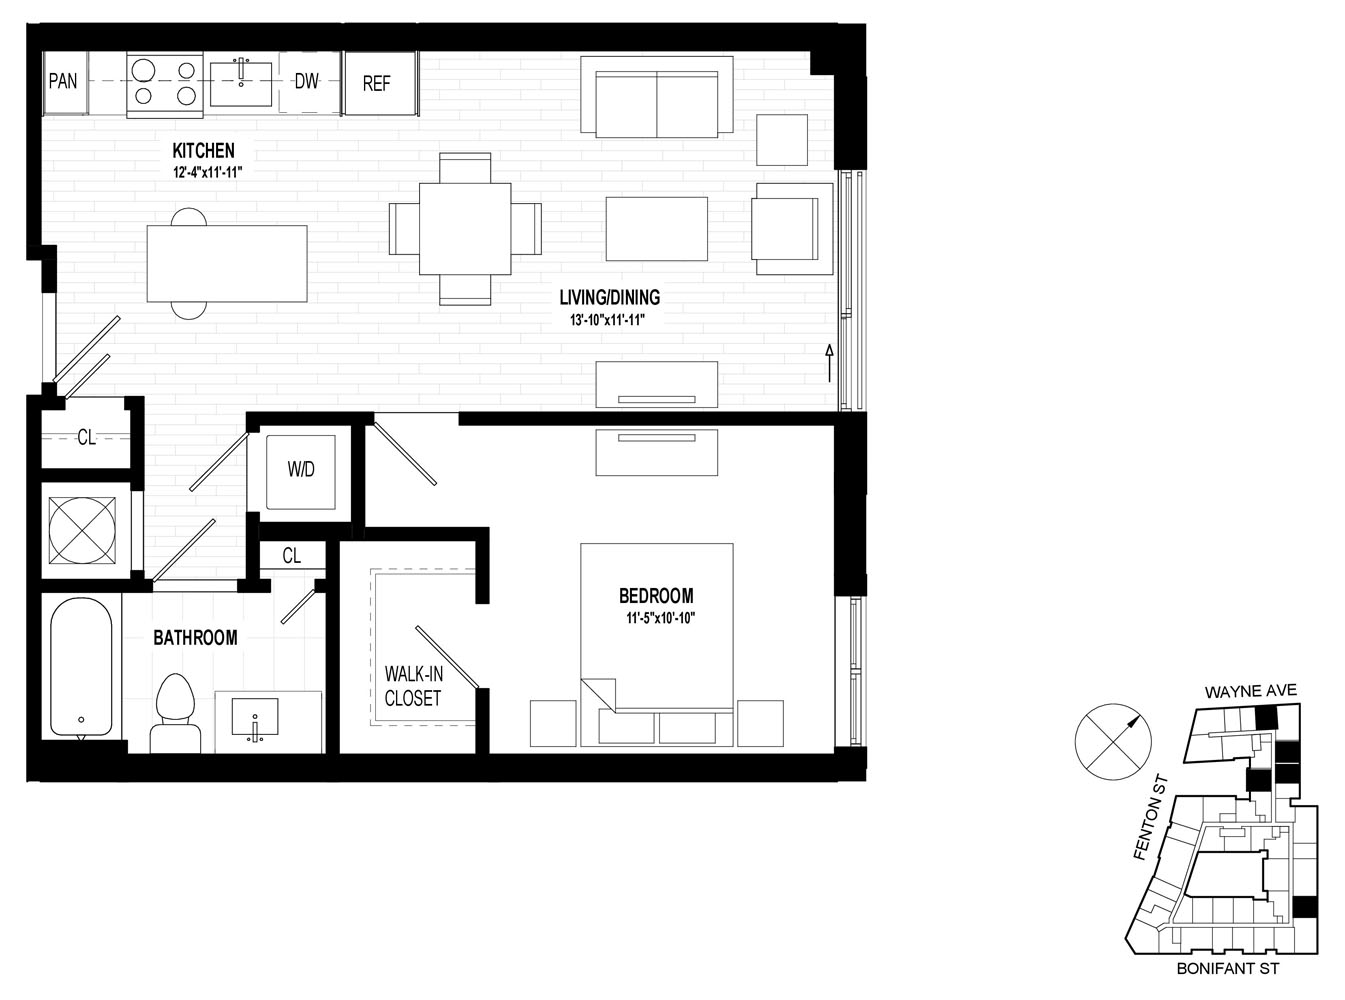 P0578887 761aa13 central a04 646 2 floorplan